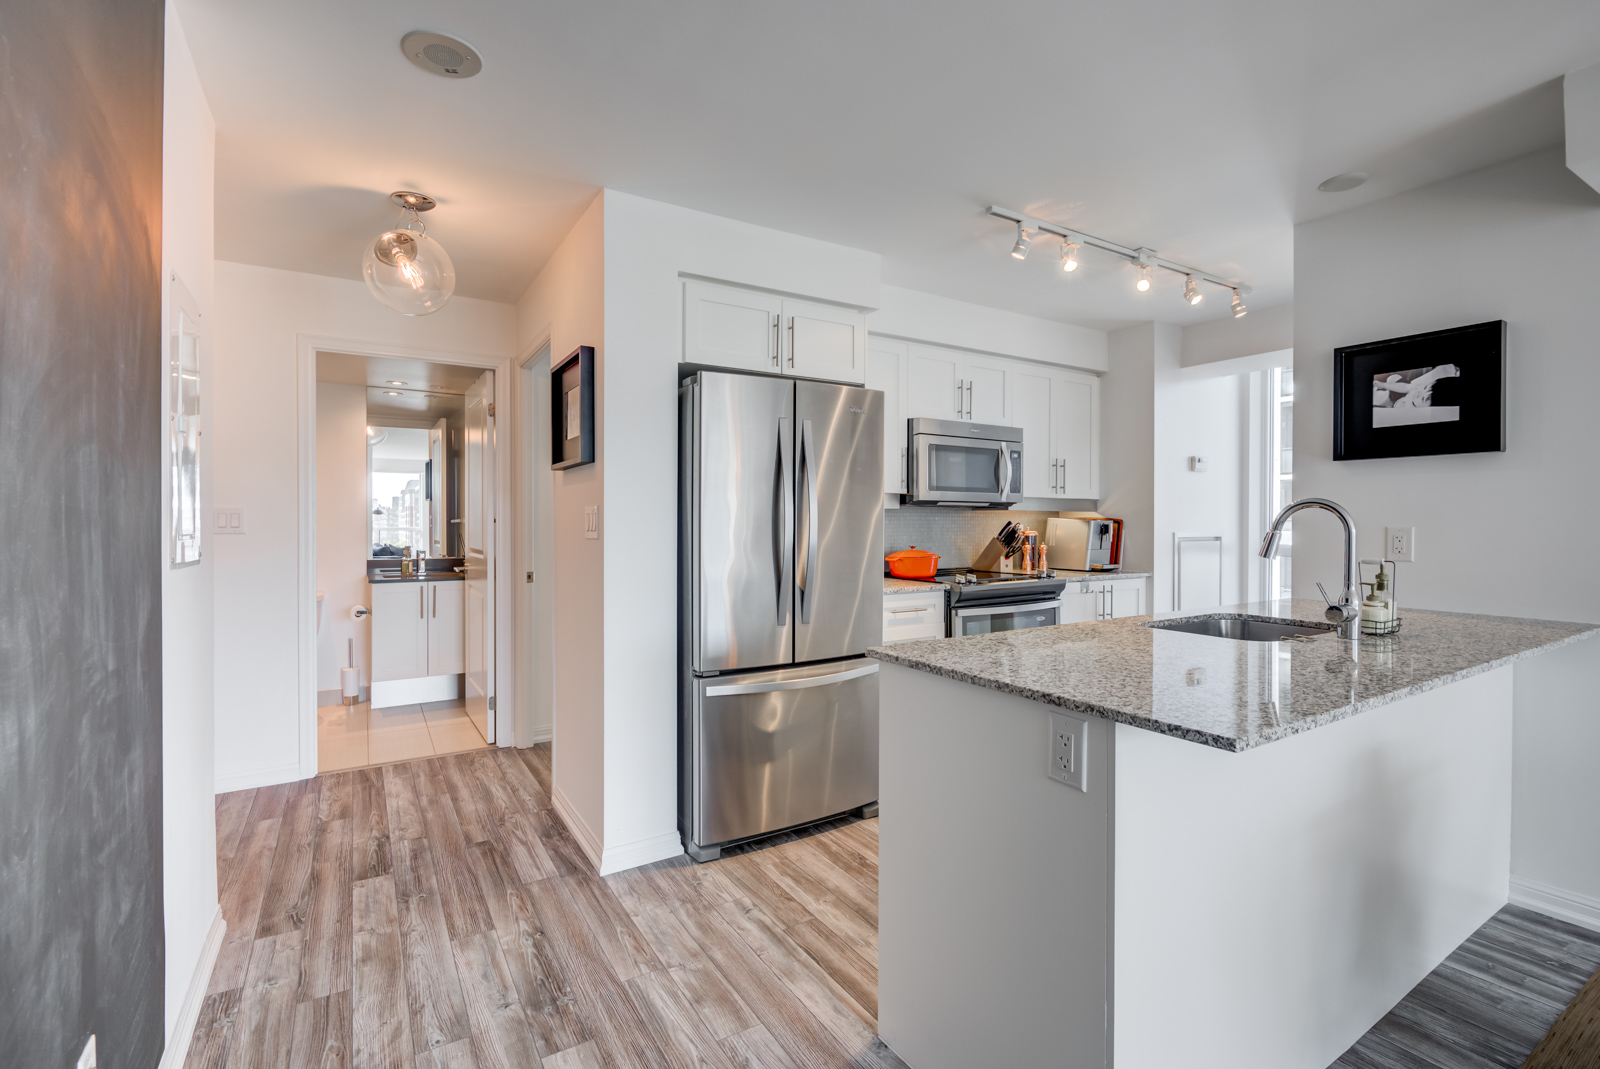 Breakfast bar with granite counter-top and stainless-steel kitchen appliances at 400 Adelaide St E Unit 704 condos in Moss Park.